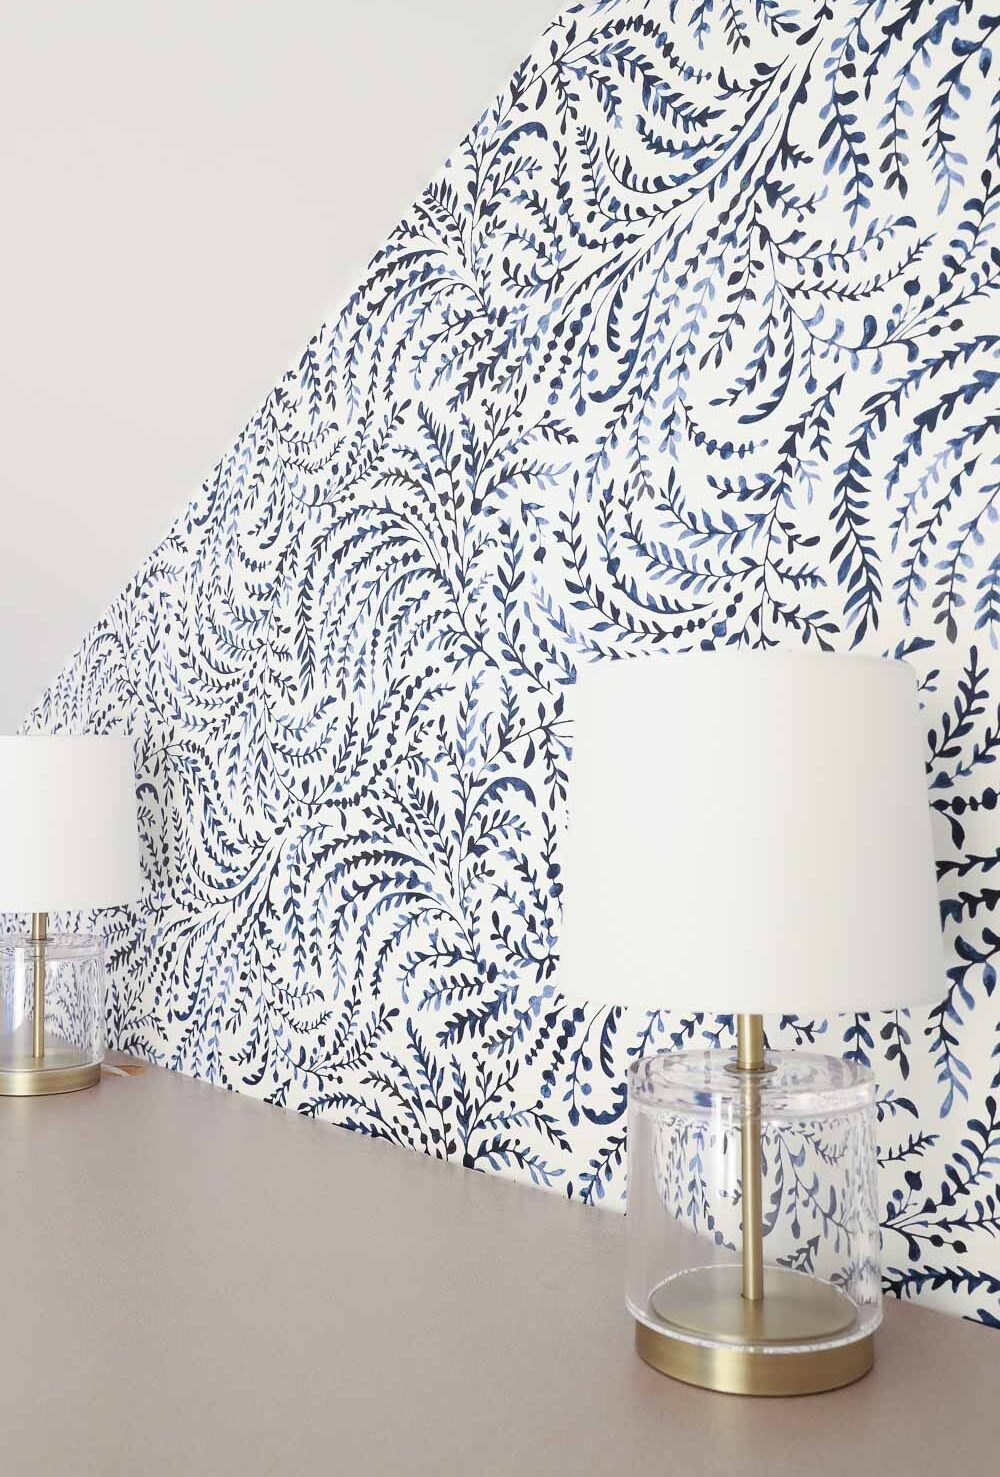 Gorgeous navy and white wallpaper with leafy watercolor vines!!